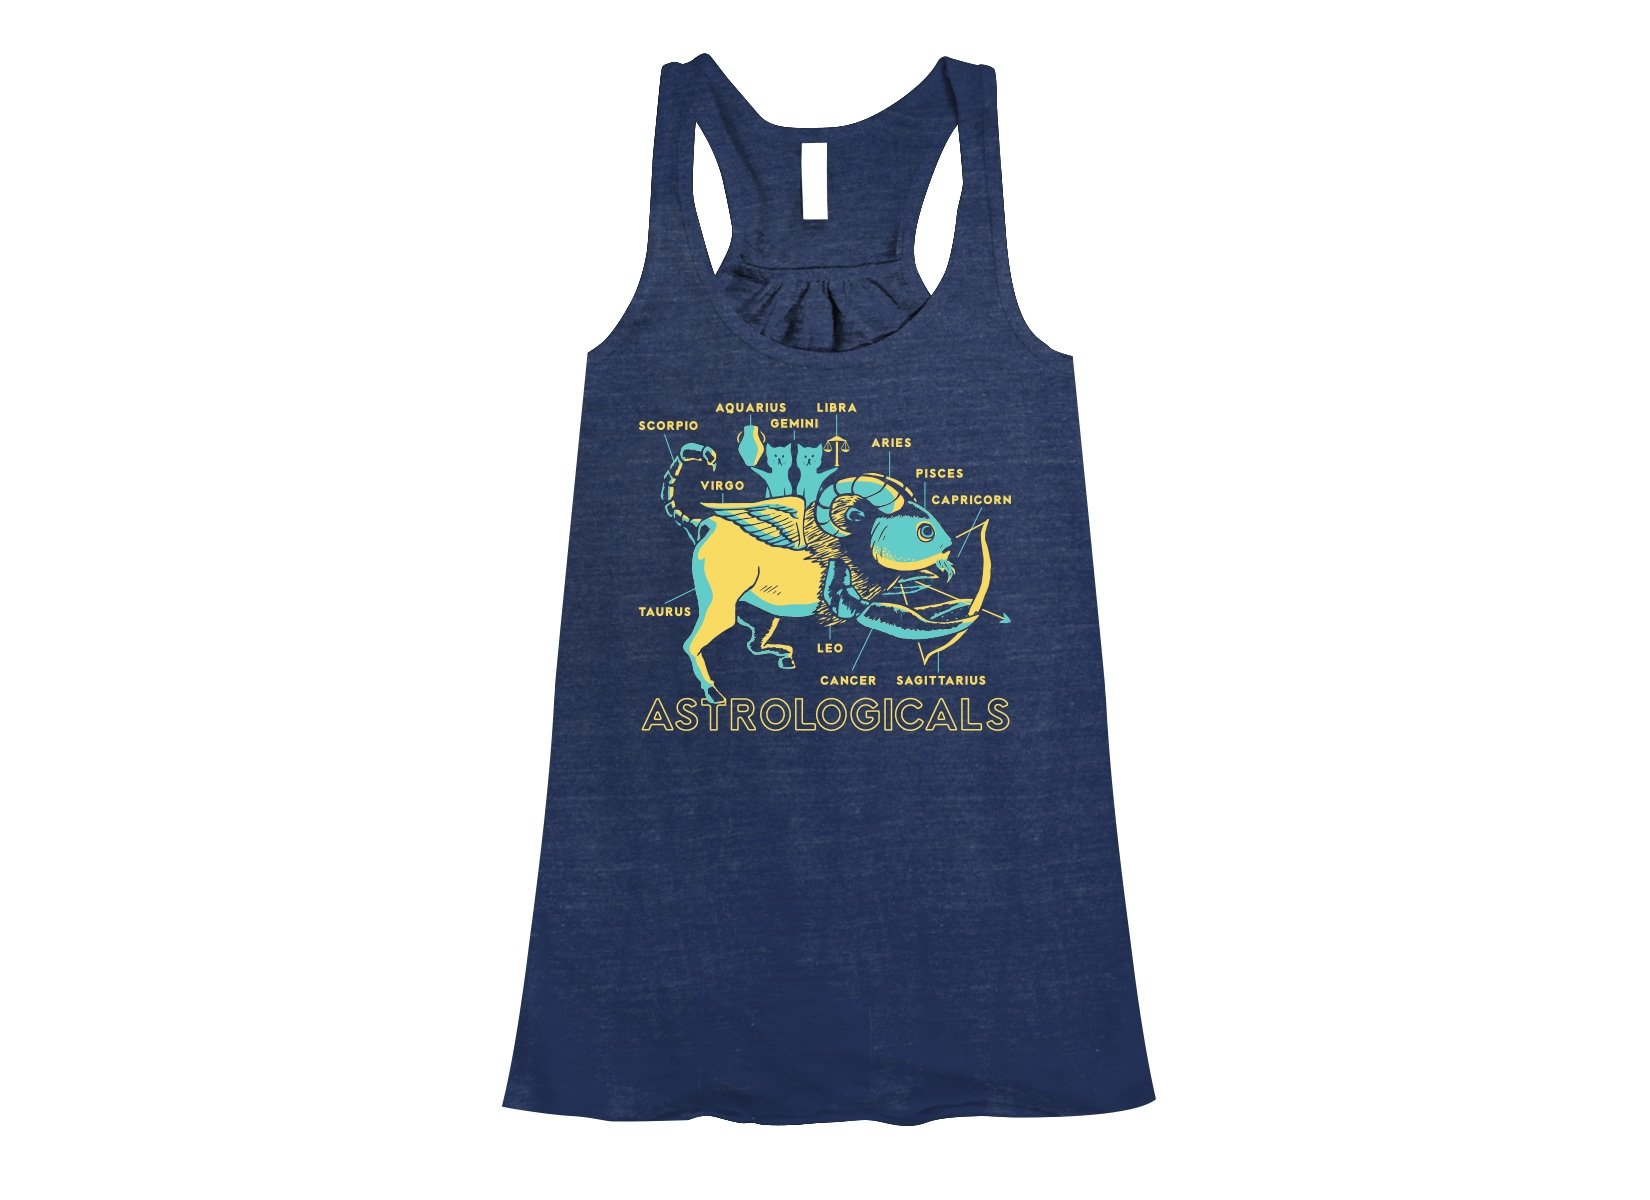 Astrologicals on Womens Tanks T-Shirt